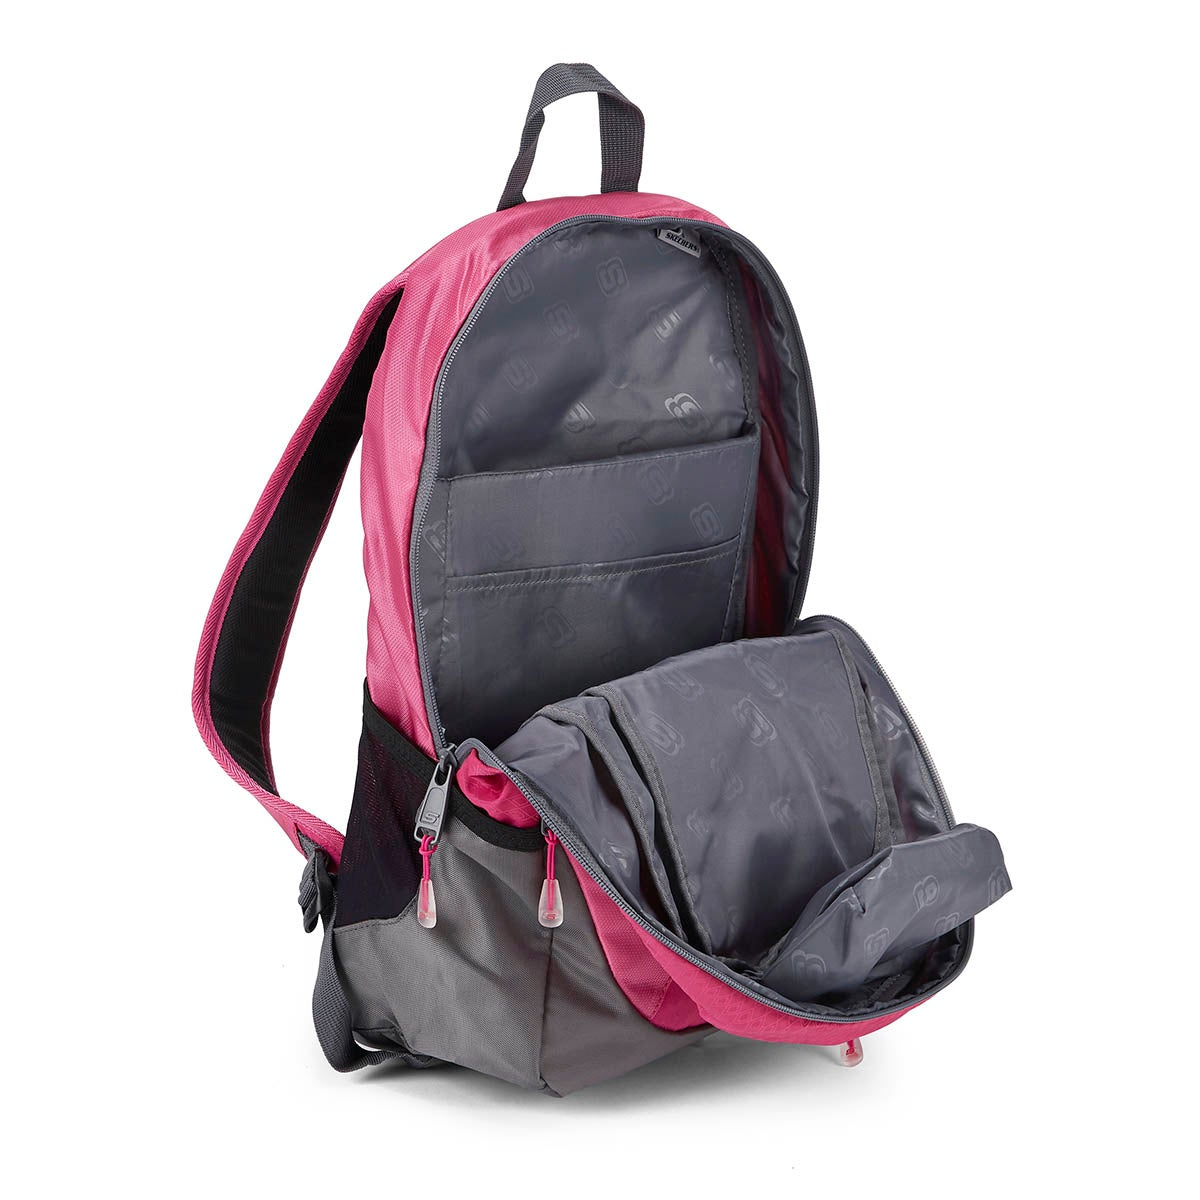 Grls Speedway Overdrive pink backpack